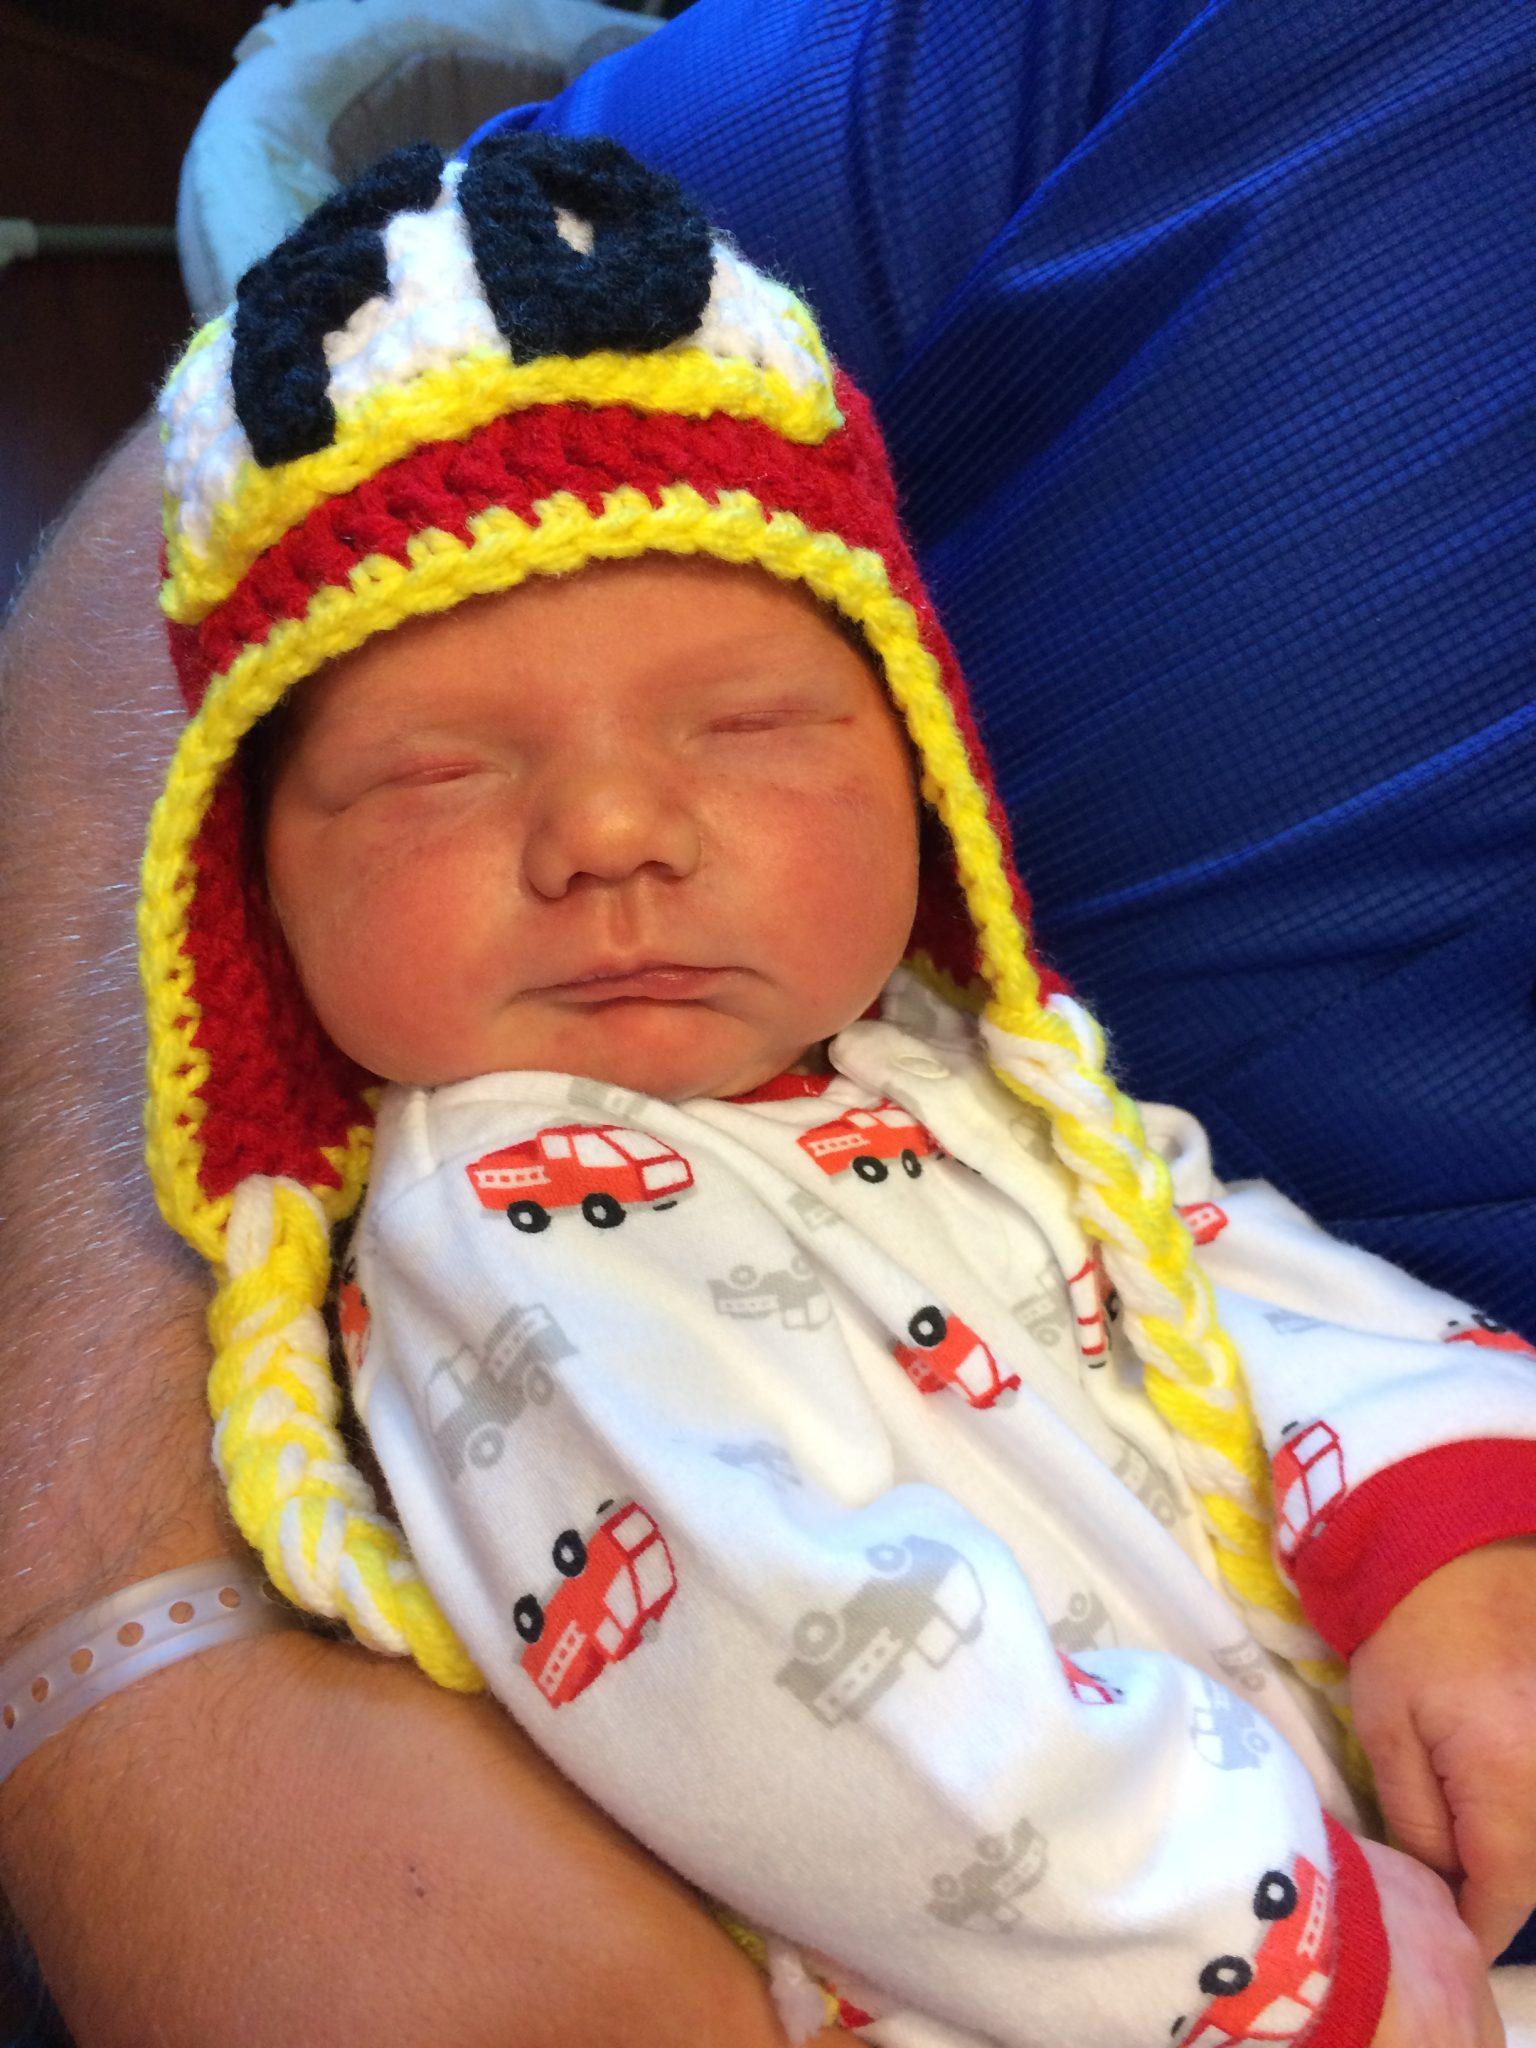 Baby Dille with hat from DuChene